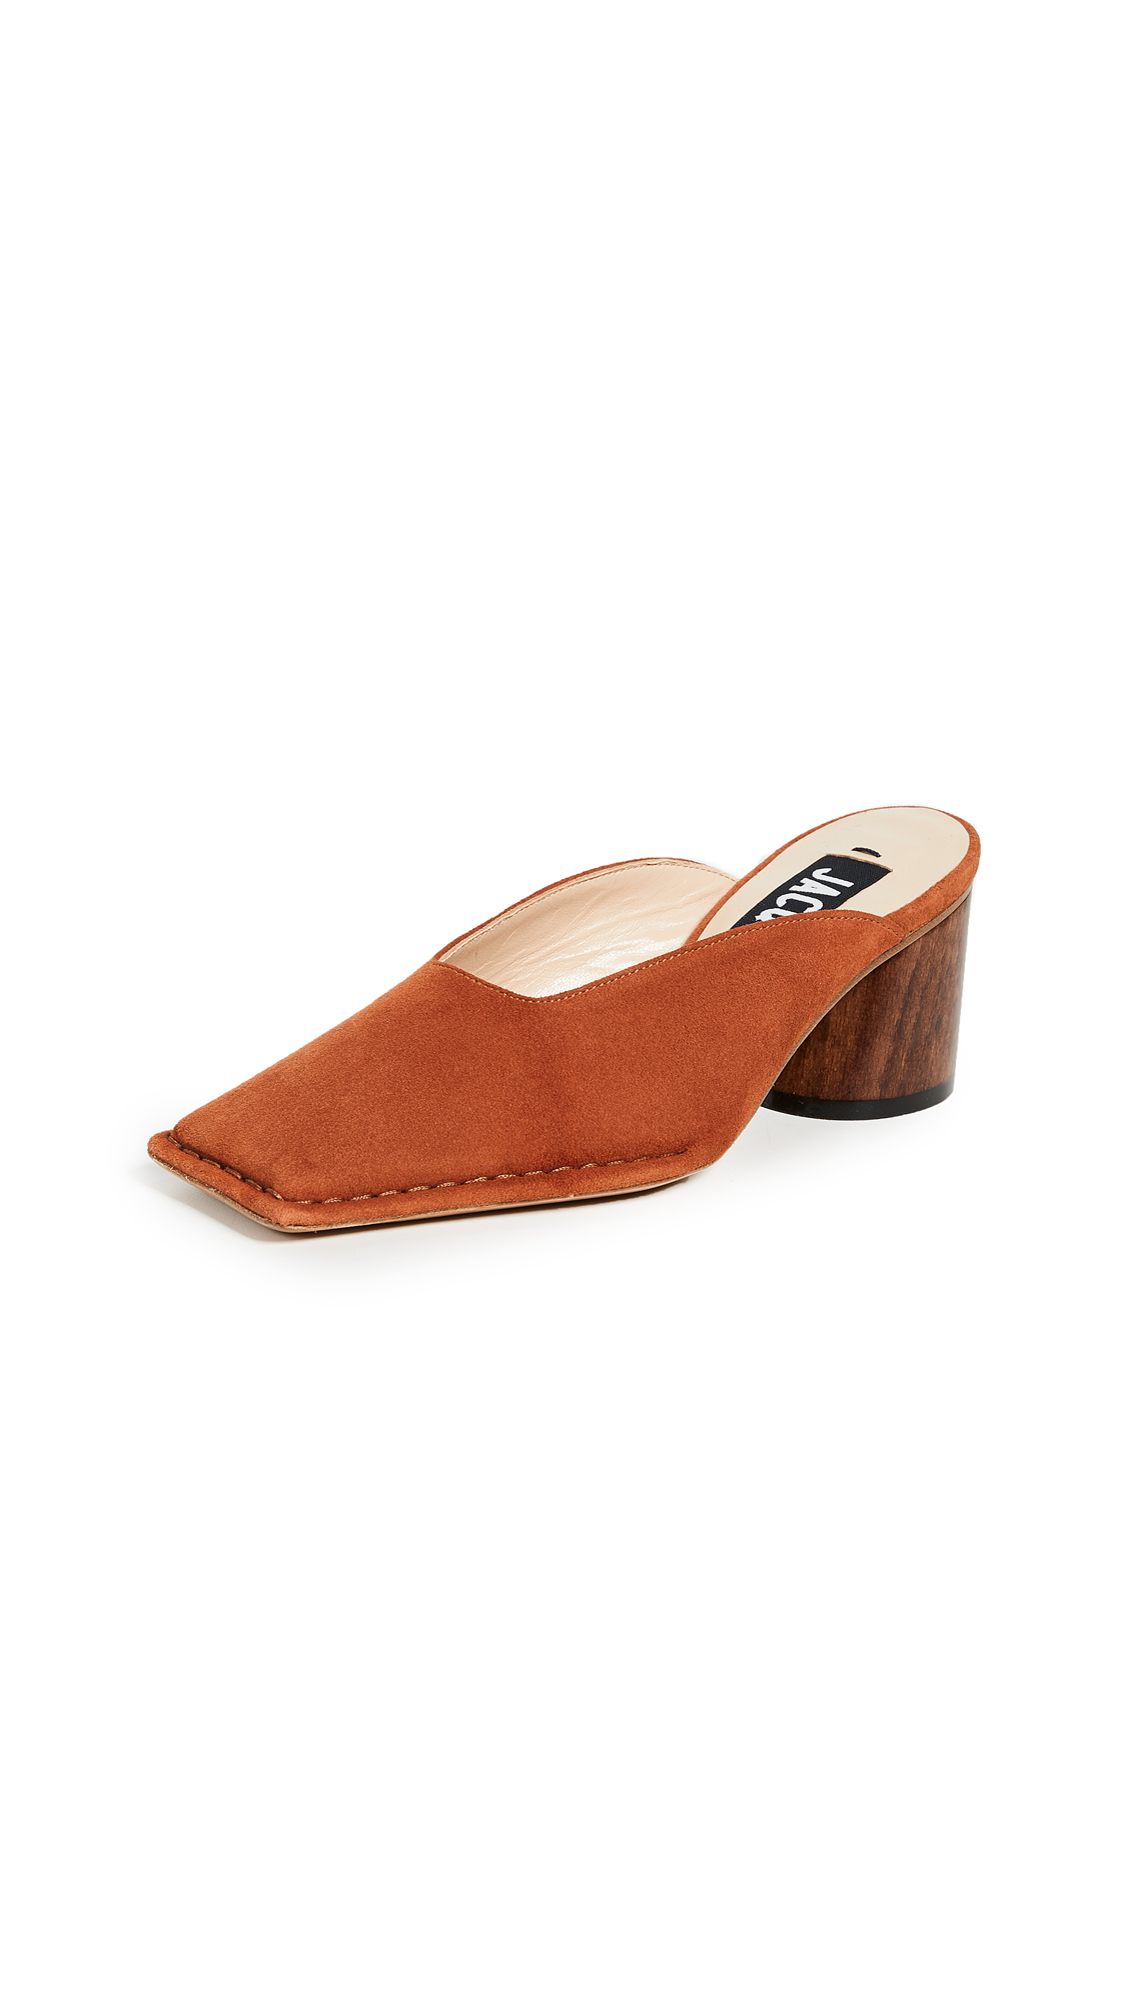 Les Mules Sabah Leather Mules in Brown